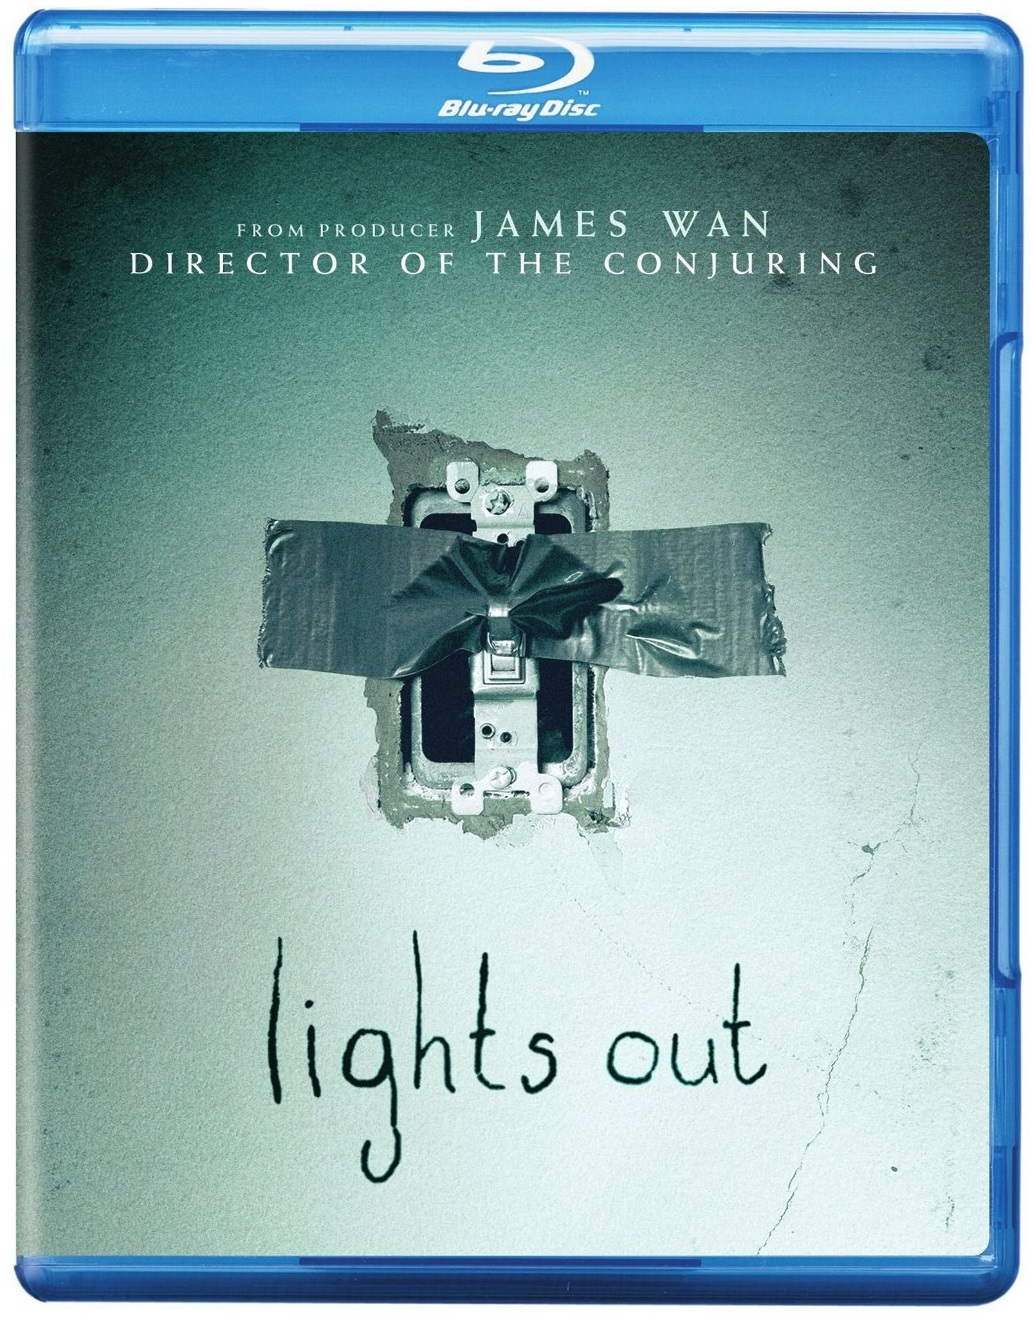 Lights Out - Blu-ray review